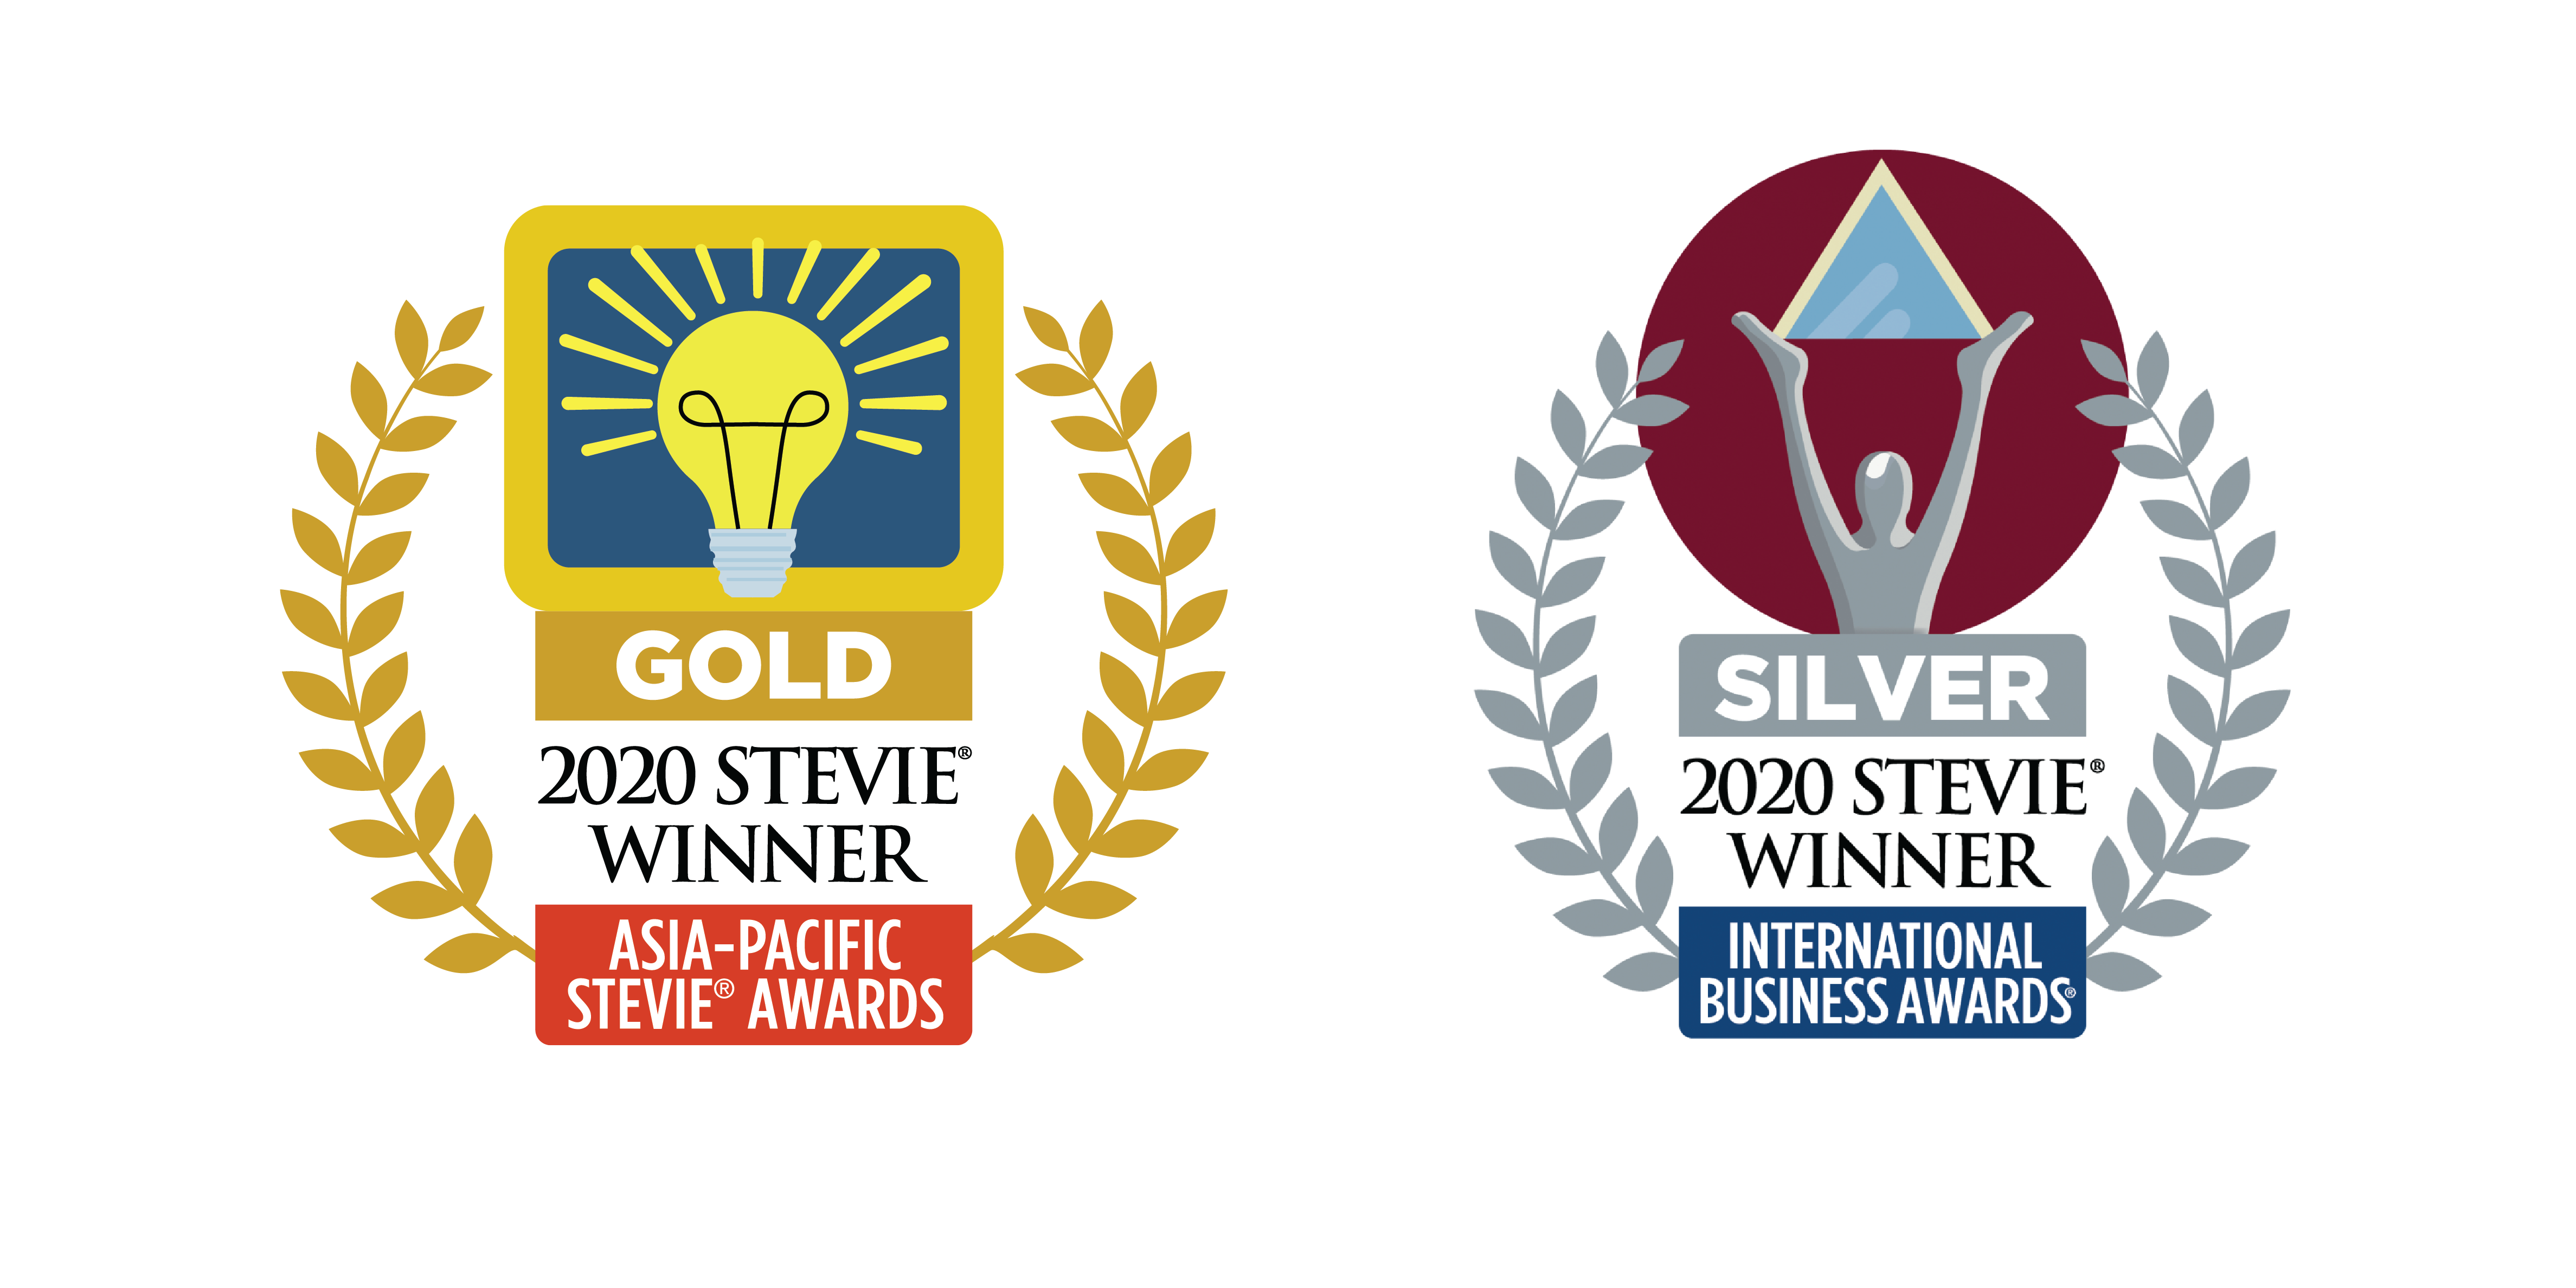 Tricor Group Recognized for Public Relations Excellence at the 2020 Asia-Pacific Stevie Awards and 2020 International Business Awards